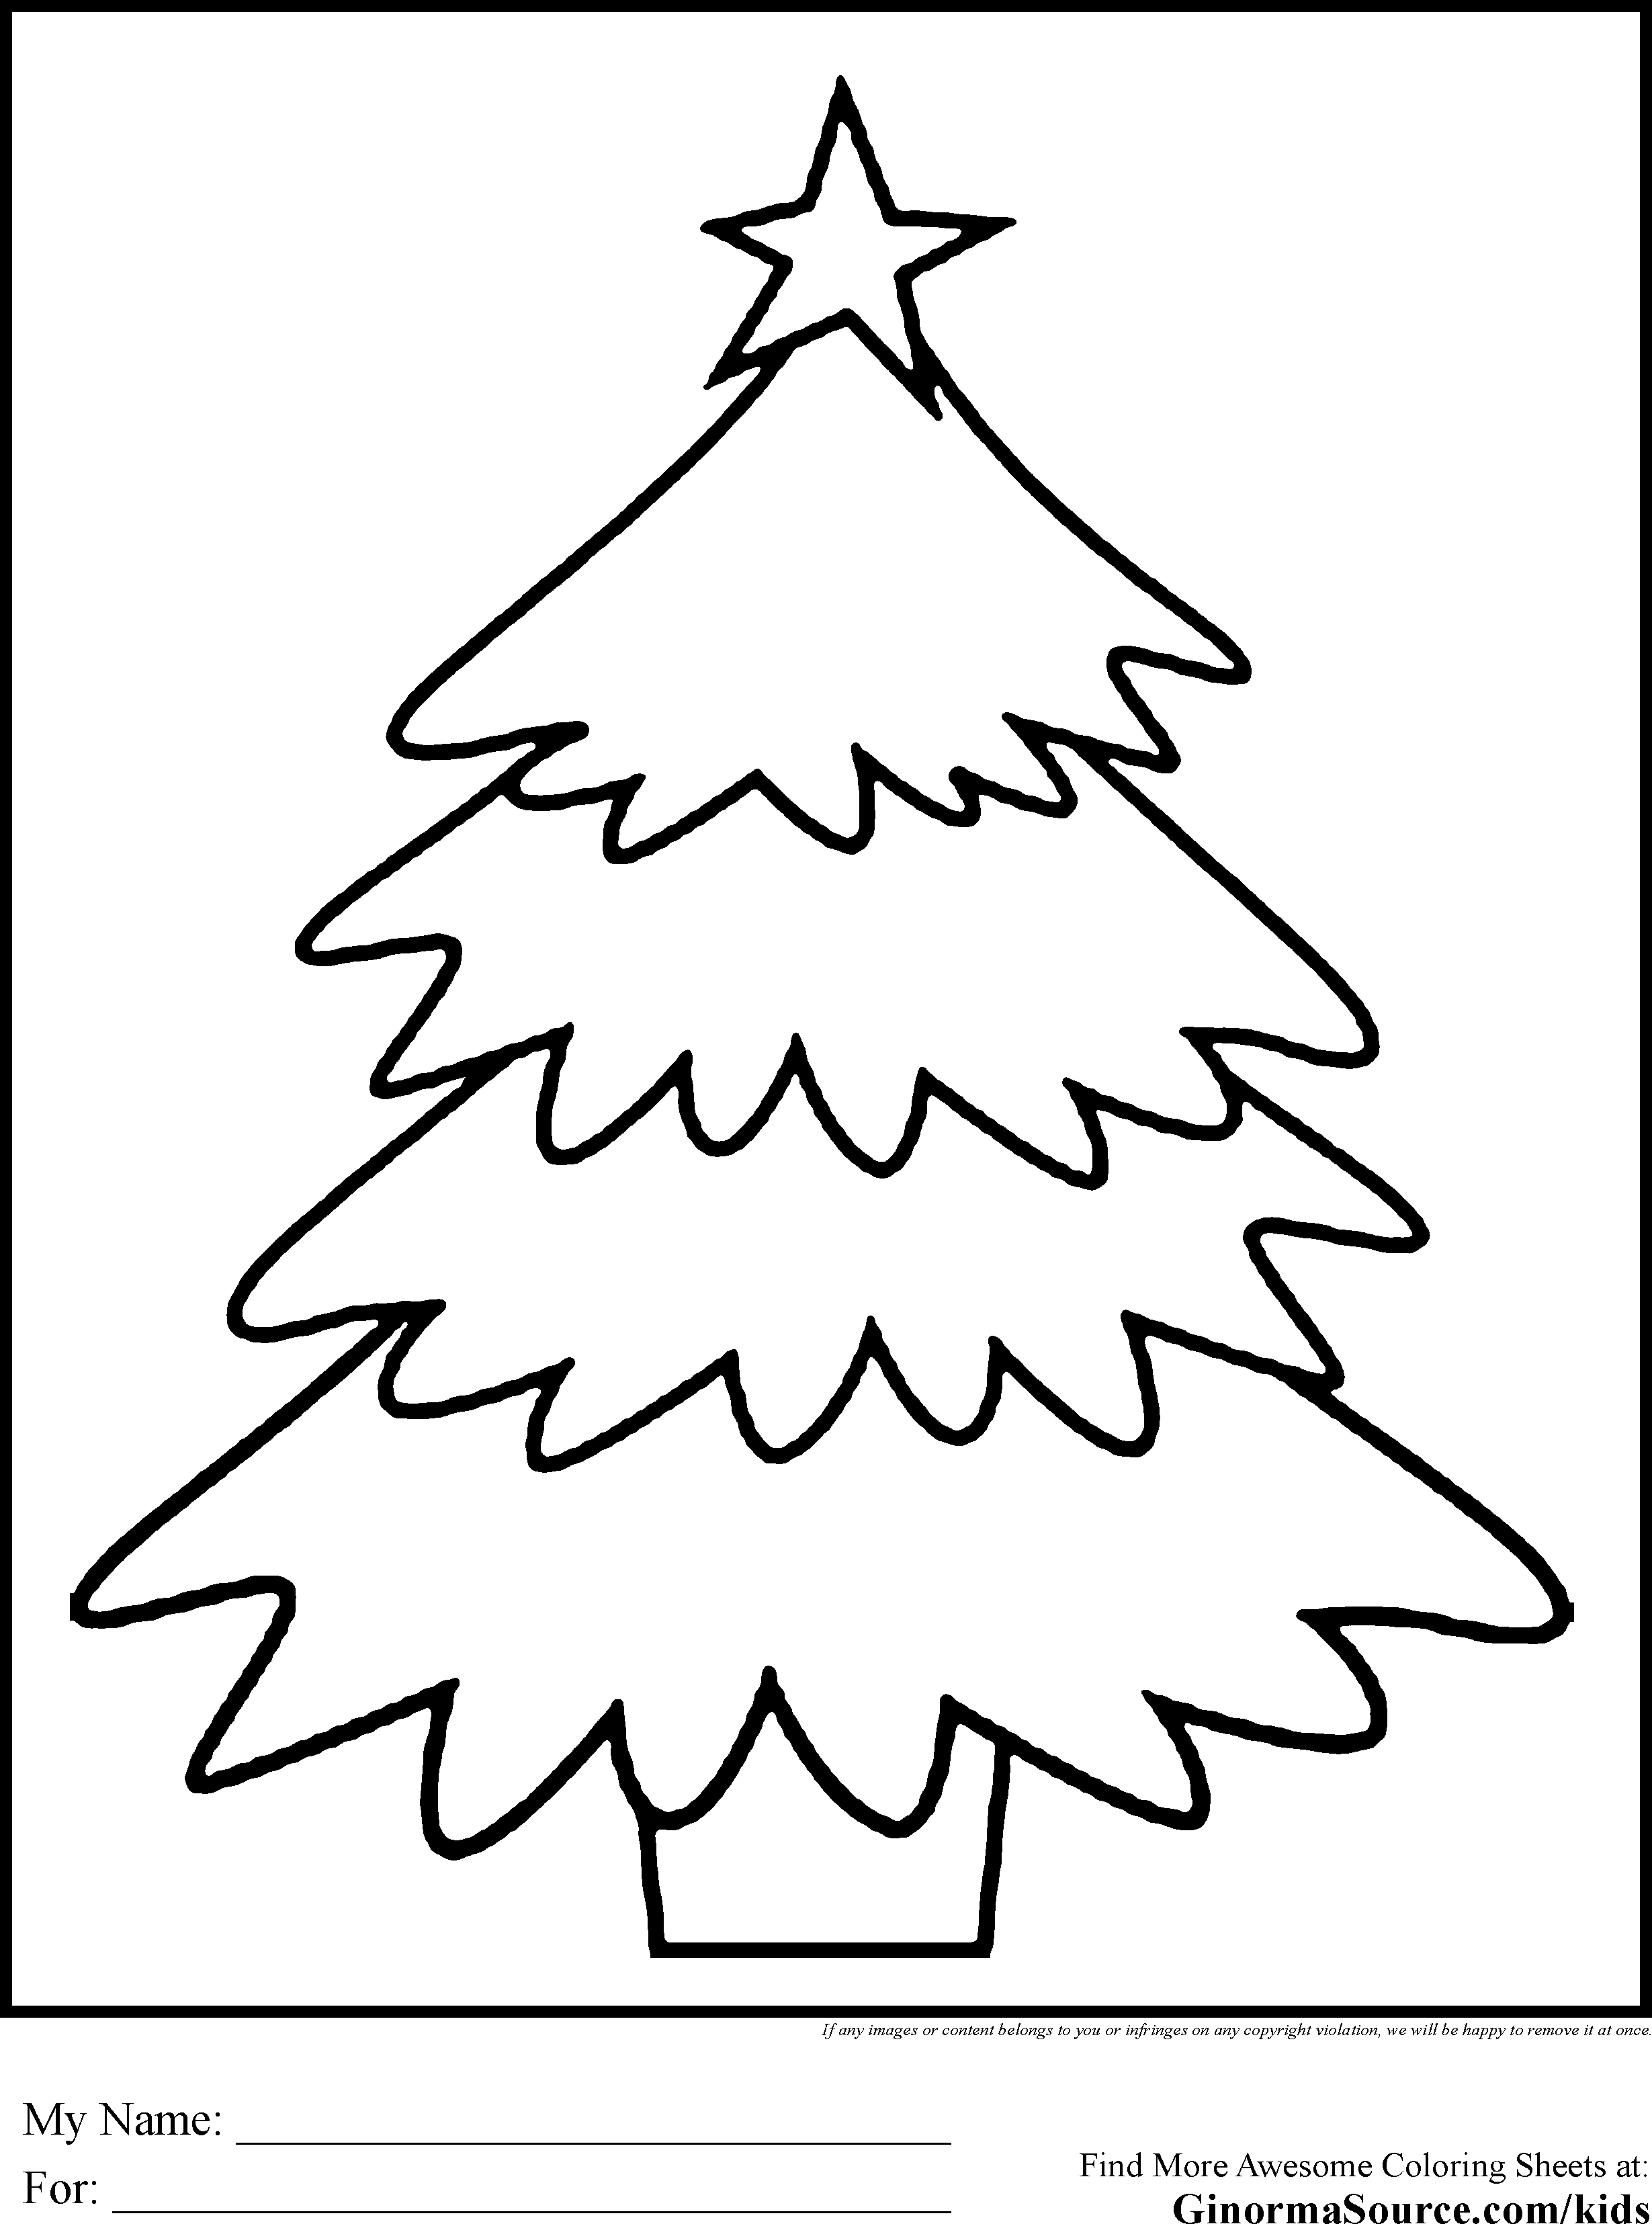 Simple Christmas Tree Coloring Pages | SS Christmas | Pinterest ...